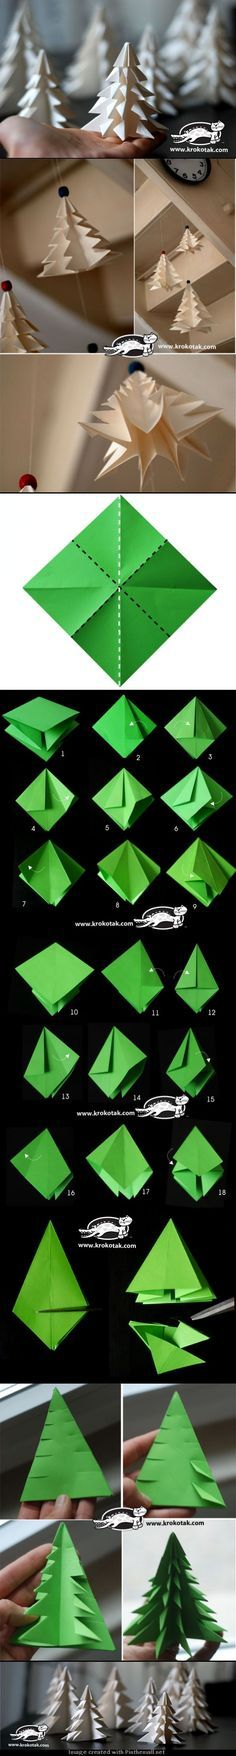 DIY Paper Christmas Tree To Decorate Your Rooms Instead of buying Christmas tree, you can make some paper Christmas tree with different colors to decorate your rooms. The steps are pretty simple - DIY Paper Christmas Tree Diy Paper Christmas Tree, Noel Christmas, Christmas Projects, Holiday Crafts, Christmas Ornaments, Origami Christmas, Xmas Trees, Christmas Candle, Green Christmas